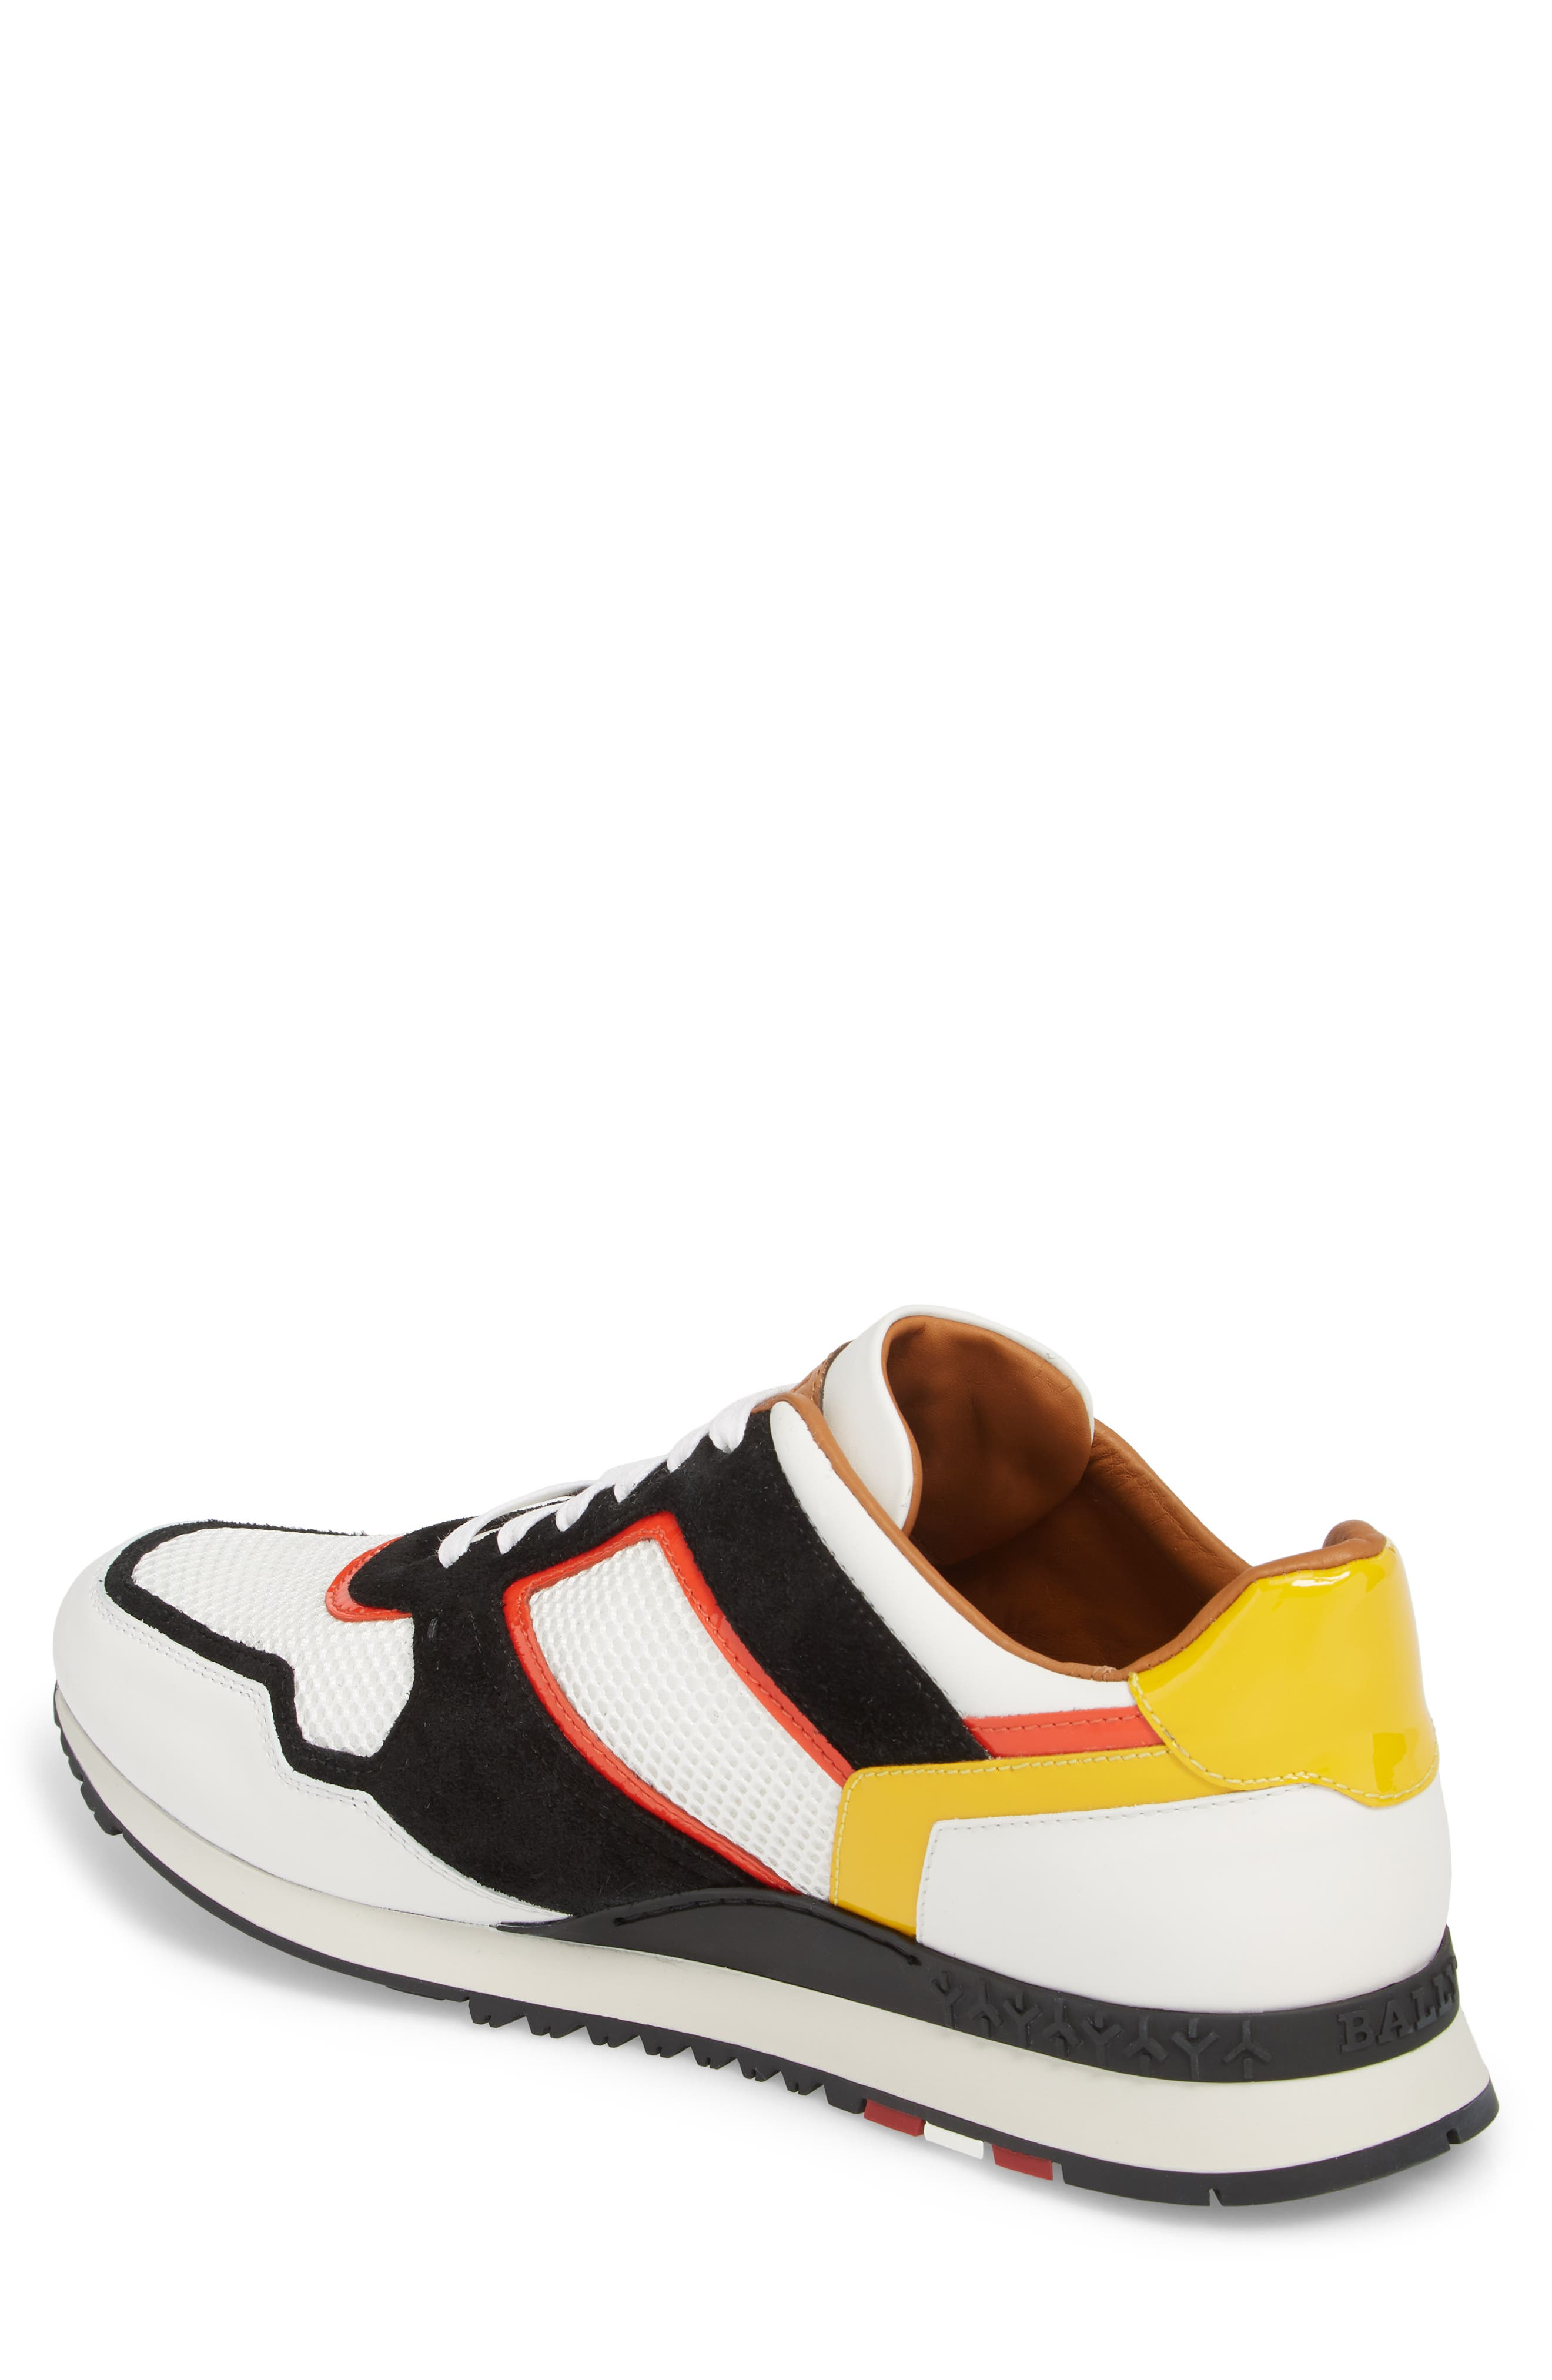 Astreo Low Top Sneaker,                             Alternate thumbnail 2, color,                             White